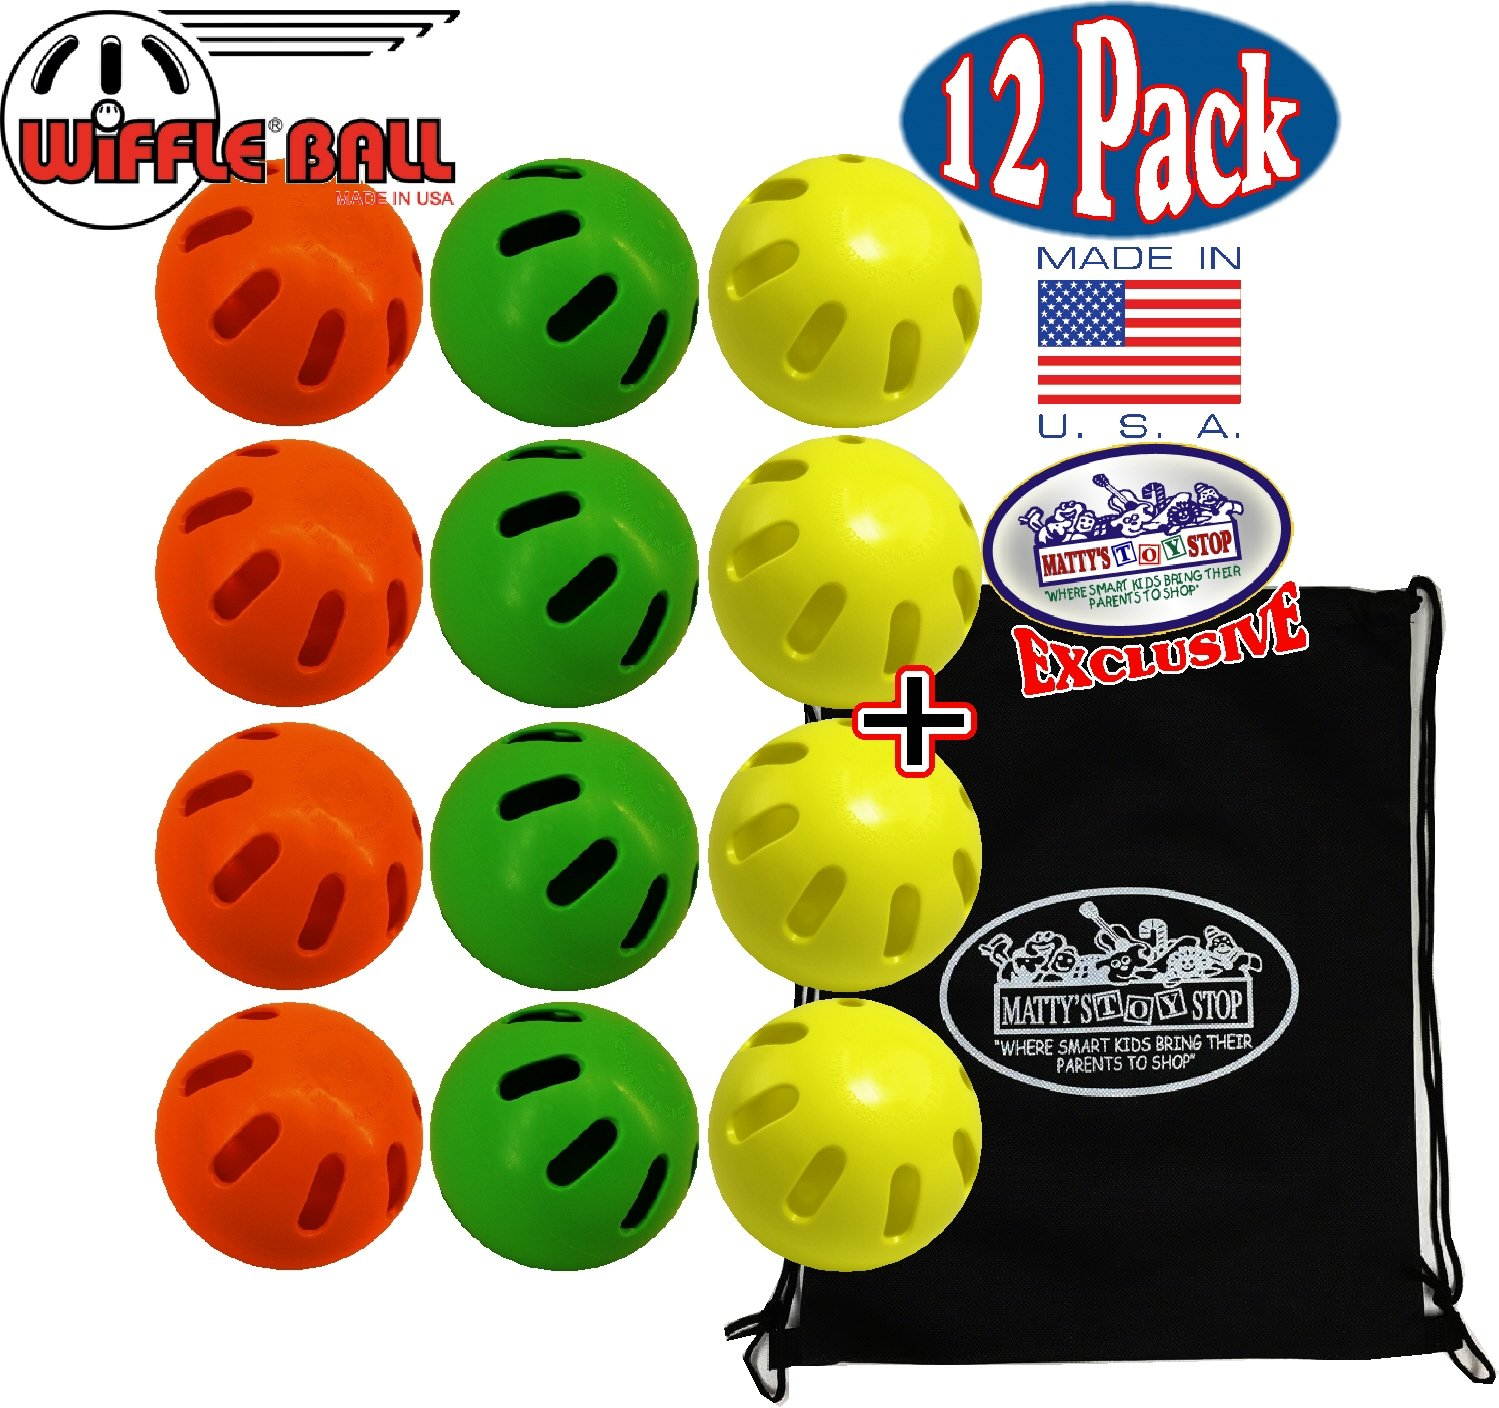 WIFFLE Balls Yellow, Green & Orange Official Size Baseballs Matty's Toy Stop Set Bundle with Storage Bag - 12 Pack (4 Yellow, 4 Green & 4 Orange) by WIFFLE (Image #1)